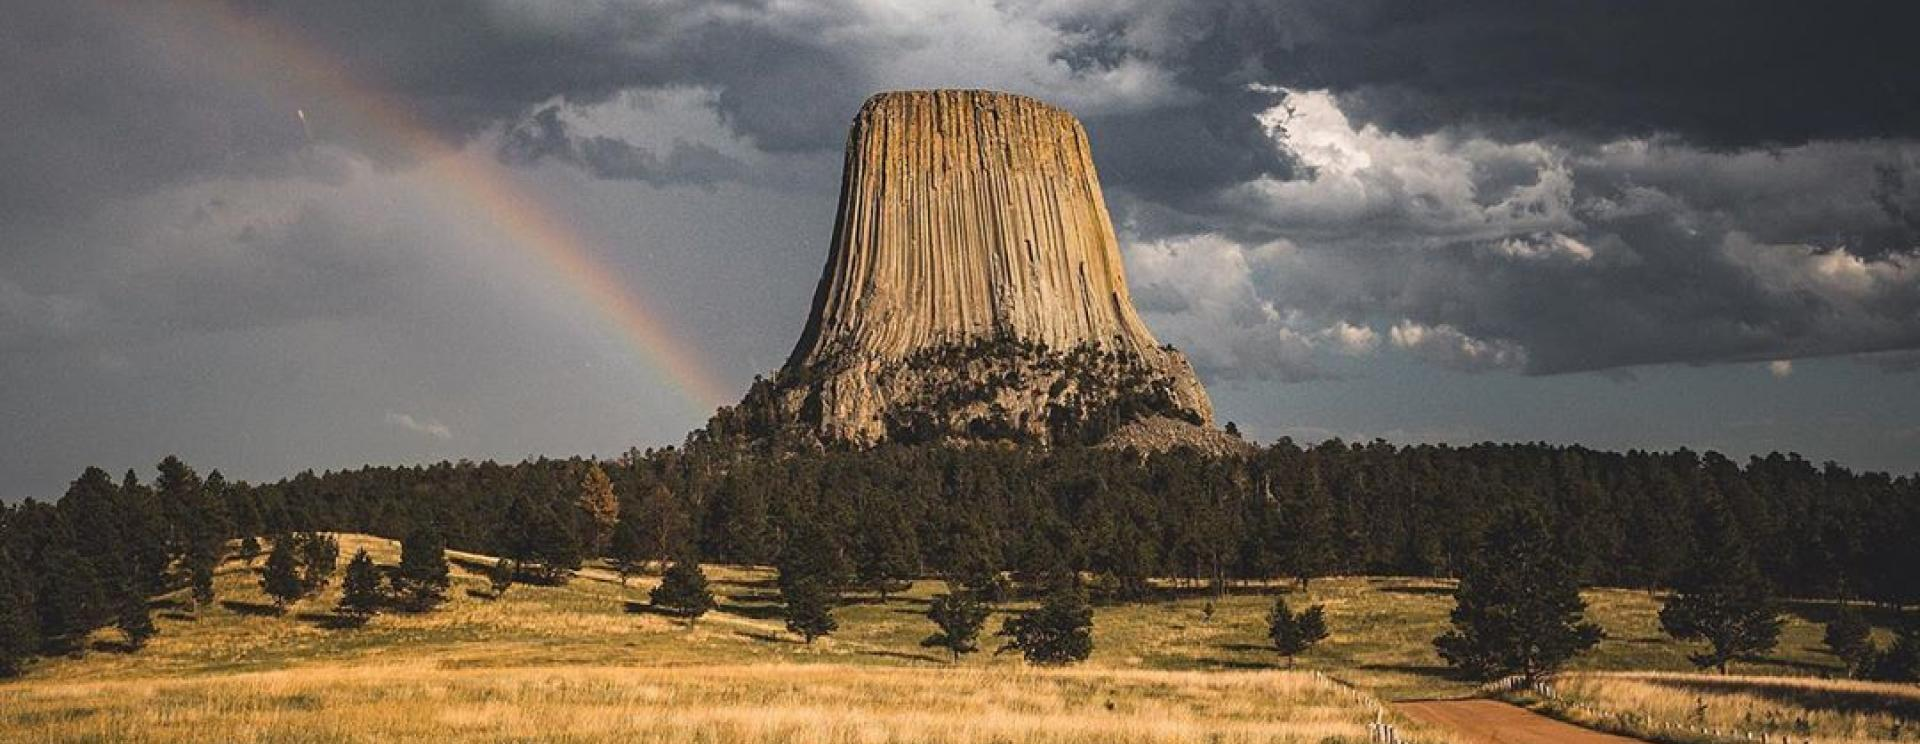 The 5 Most Remarkable Photos of the Black Hills and Badlands in August 2020